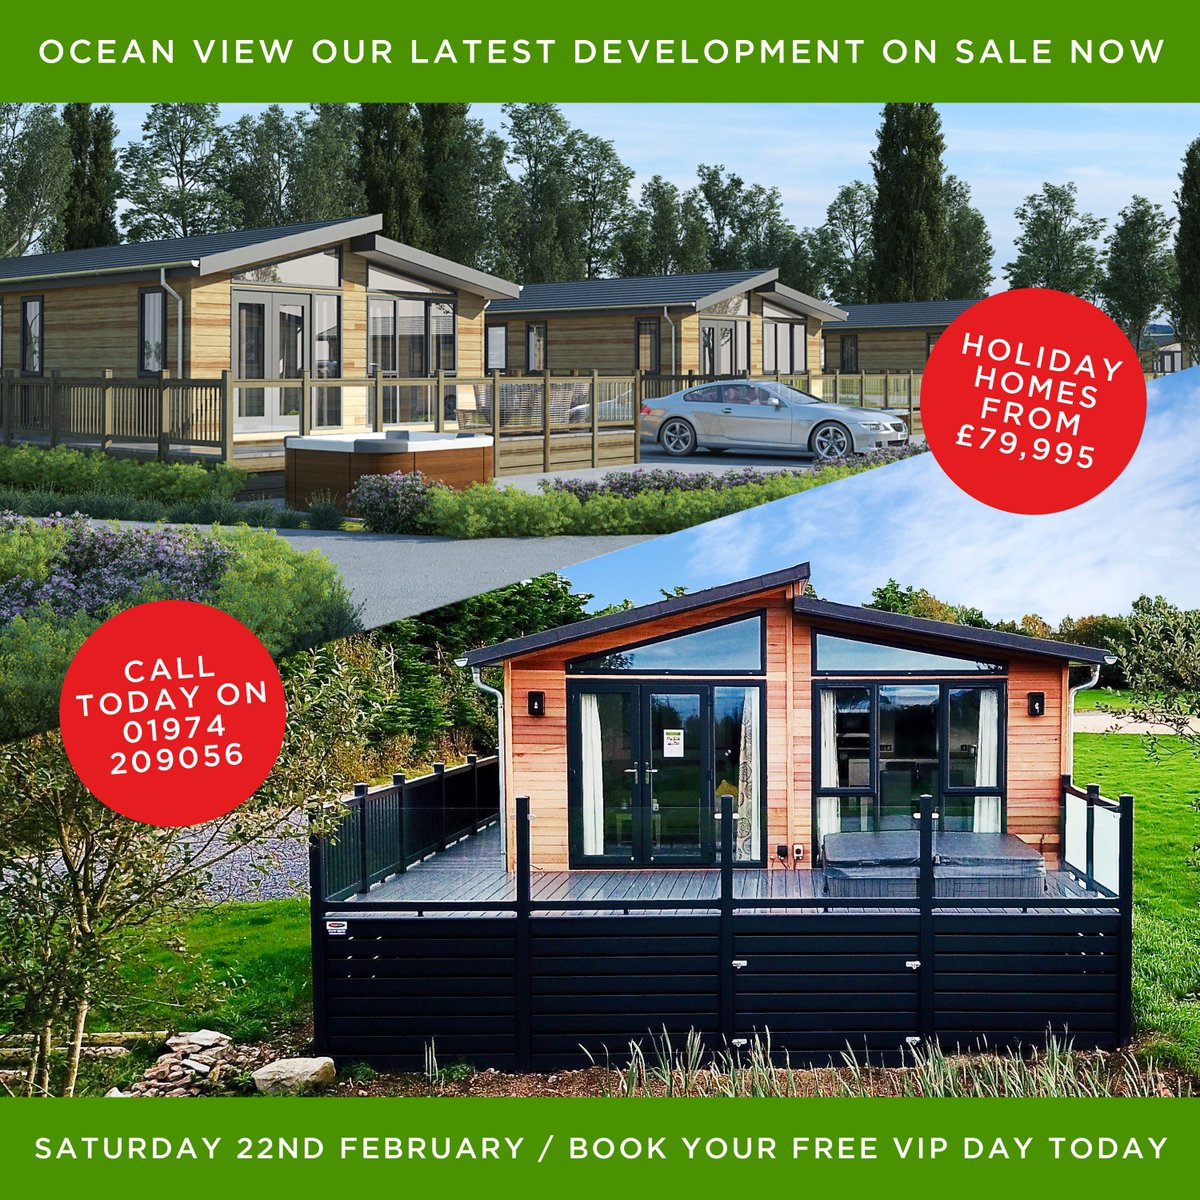 #TravelTuesdayA perfect opportunity to visit our luxury Muskoka lodge on the stunning new development Ocean View at Seven Springs Park! Join Luxury Lodge Group for the season open day on the 22nd February 2020!#newdevelopment #luxurylodge #oceanview #aspire #muskoka